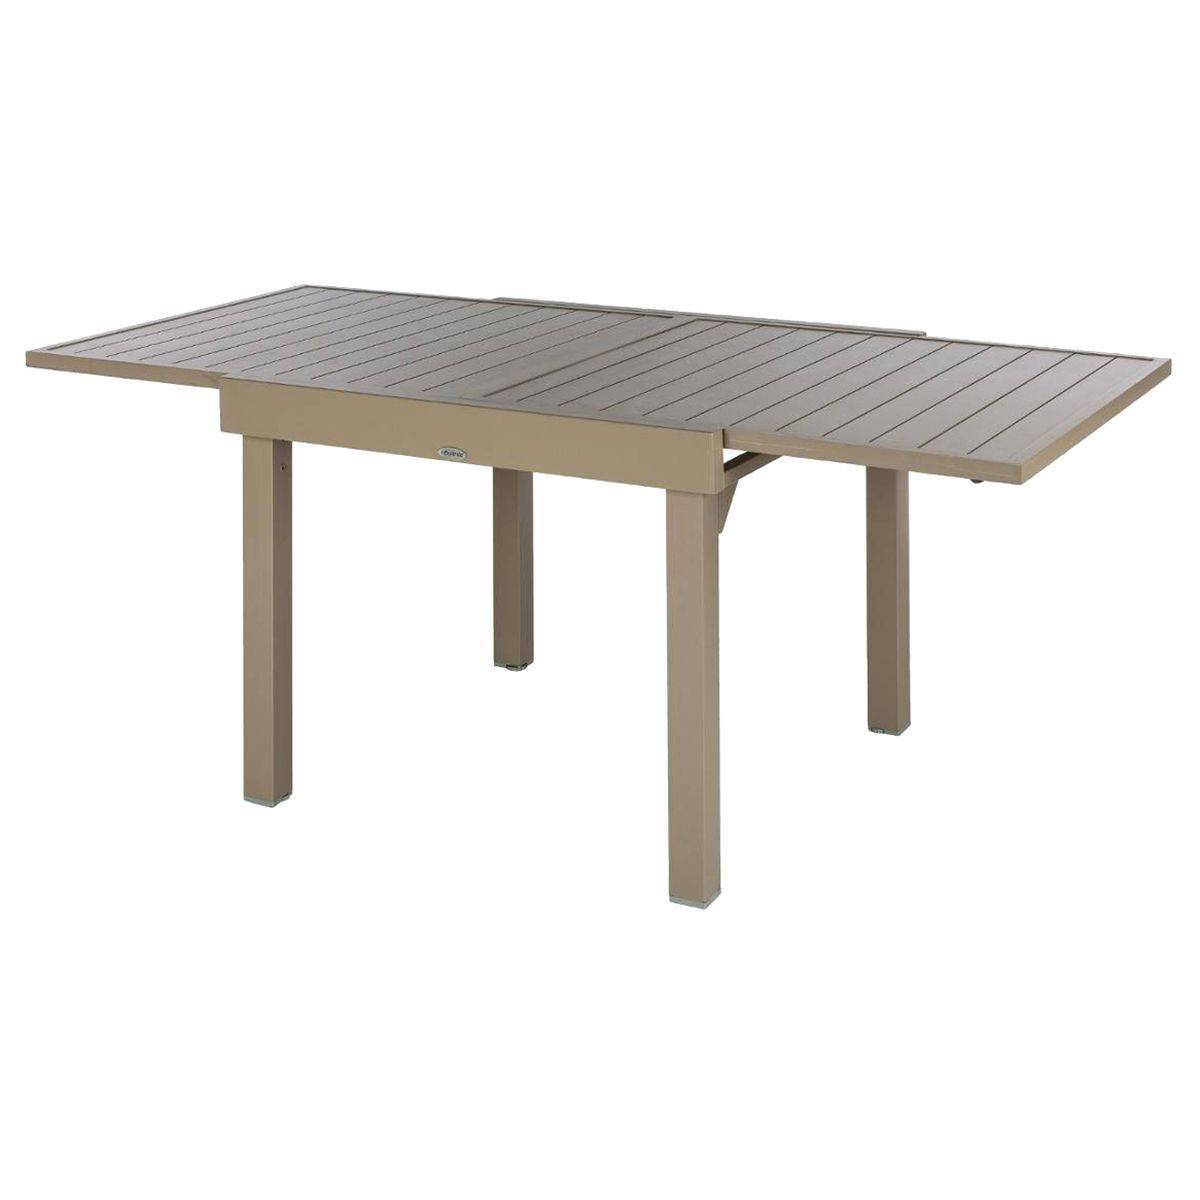 Table extensible piazza aluminium taupe hesp ride 8 places Table de jardin extensible belgique